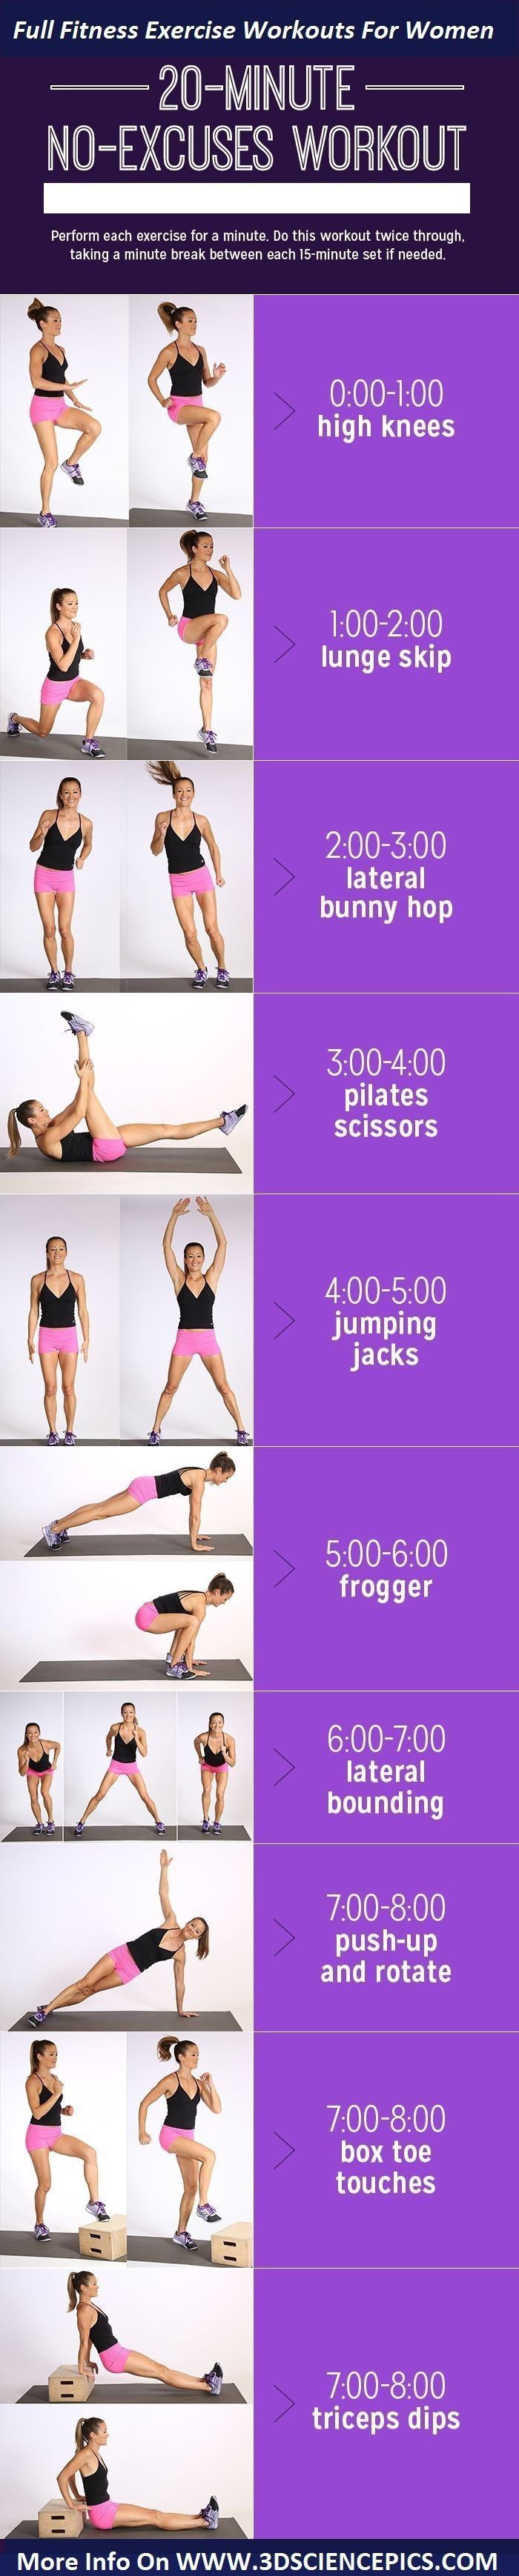 #wwwlittlevendorathleticscom #oneanddone #exercises #calories #strength #workouts #everyday #workout...